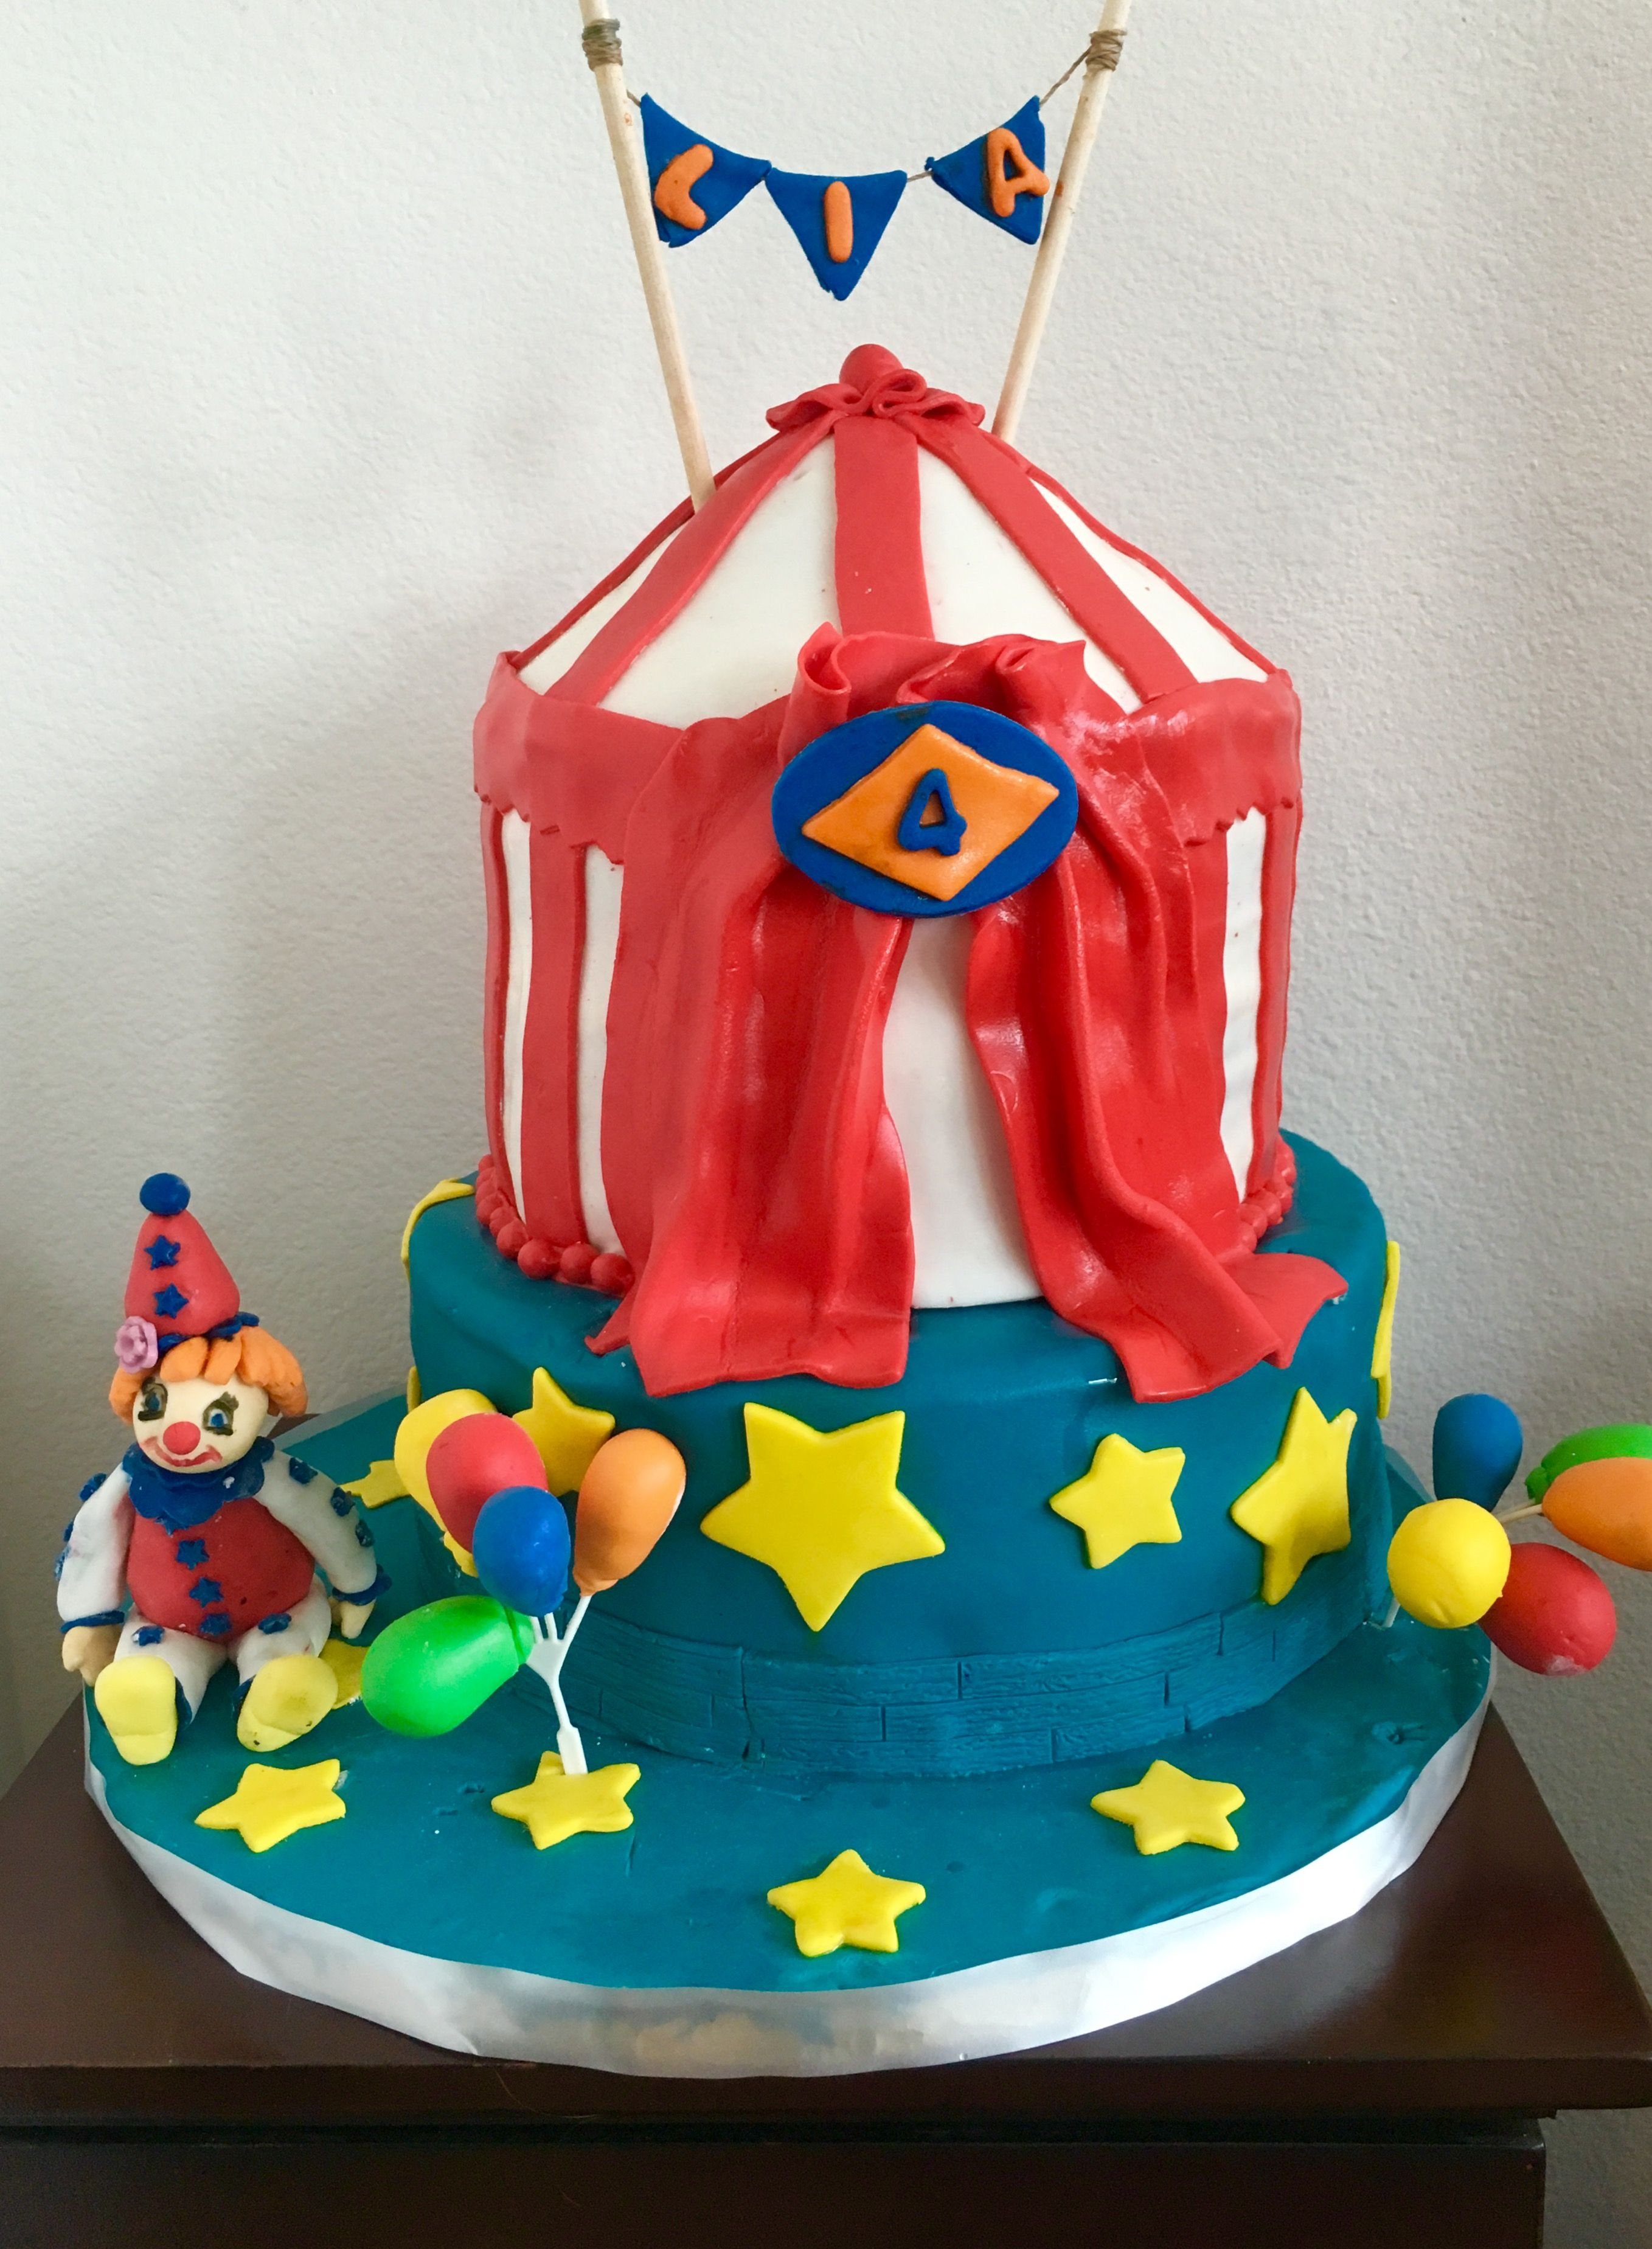 Circus themed birthday cake Complete with hand made clown balloons